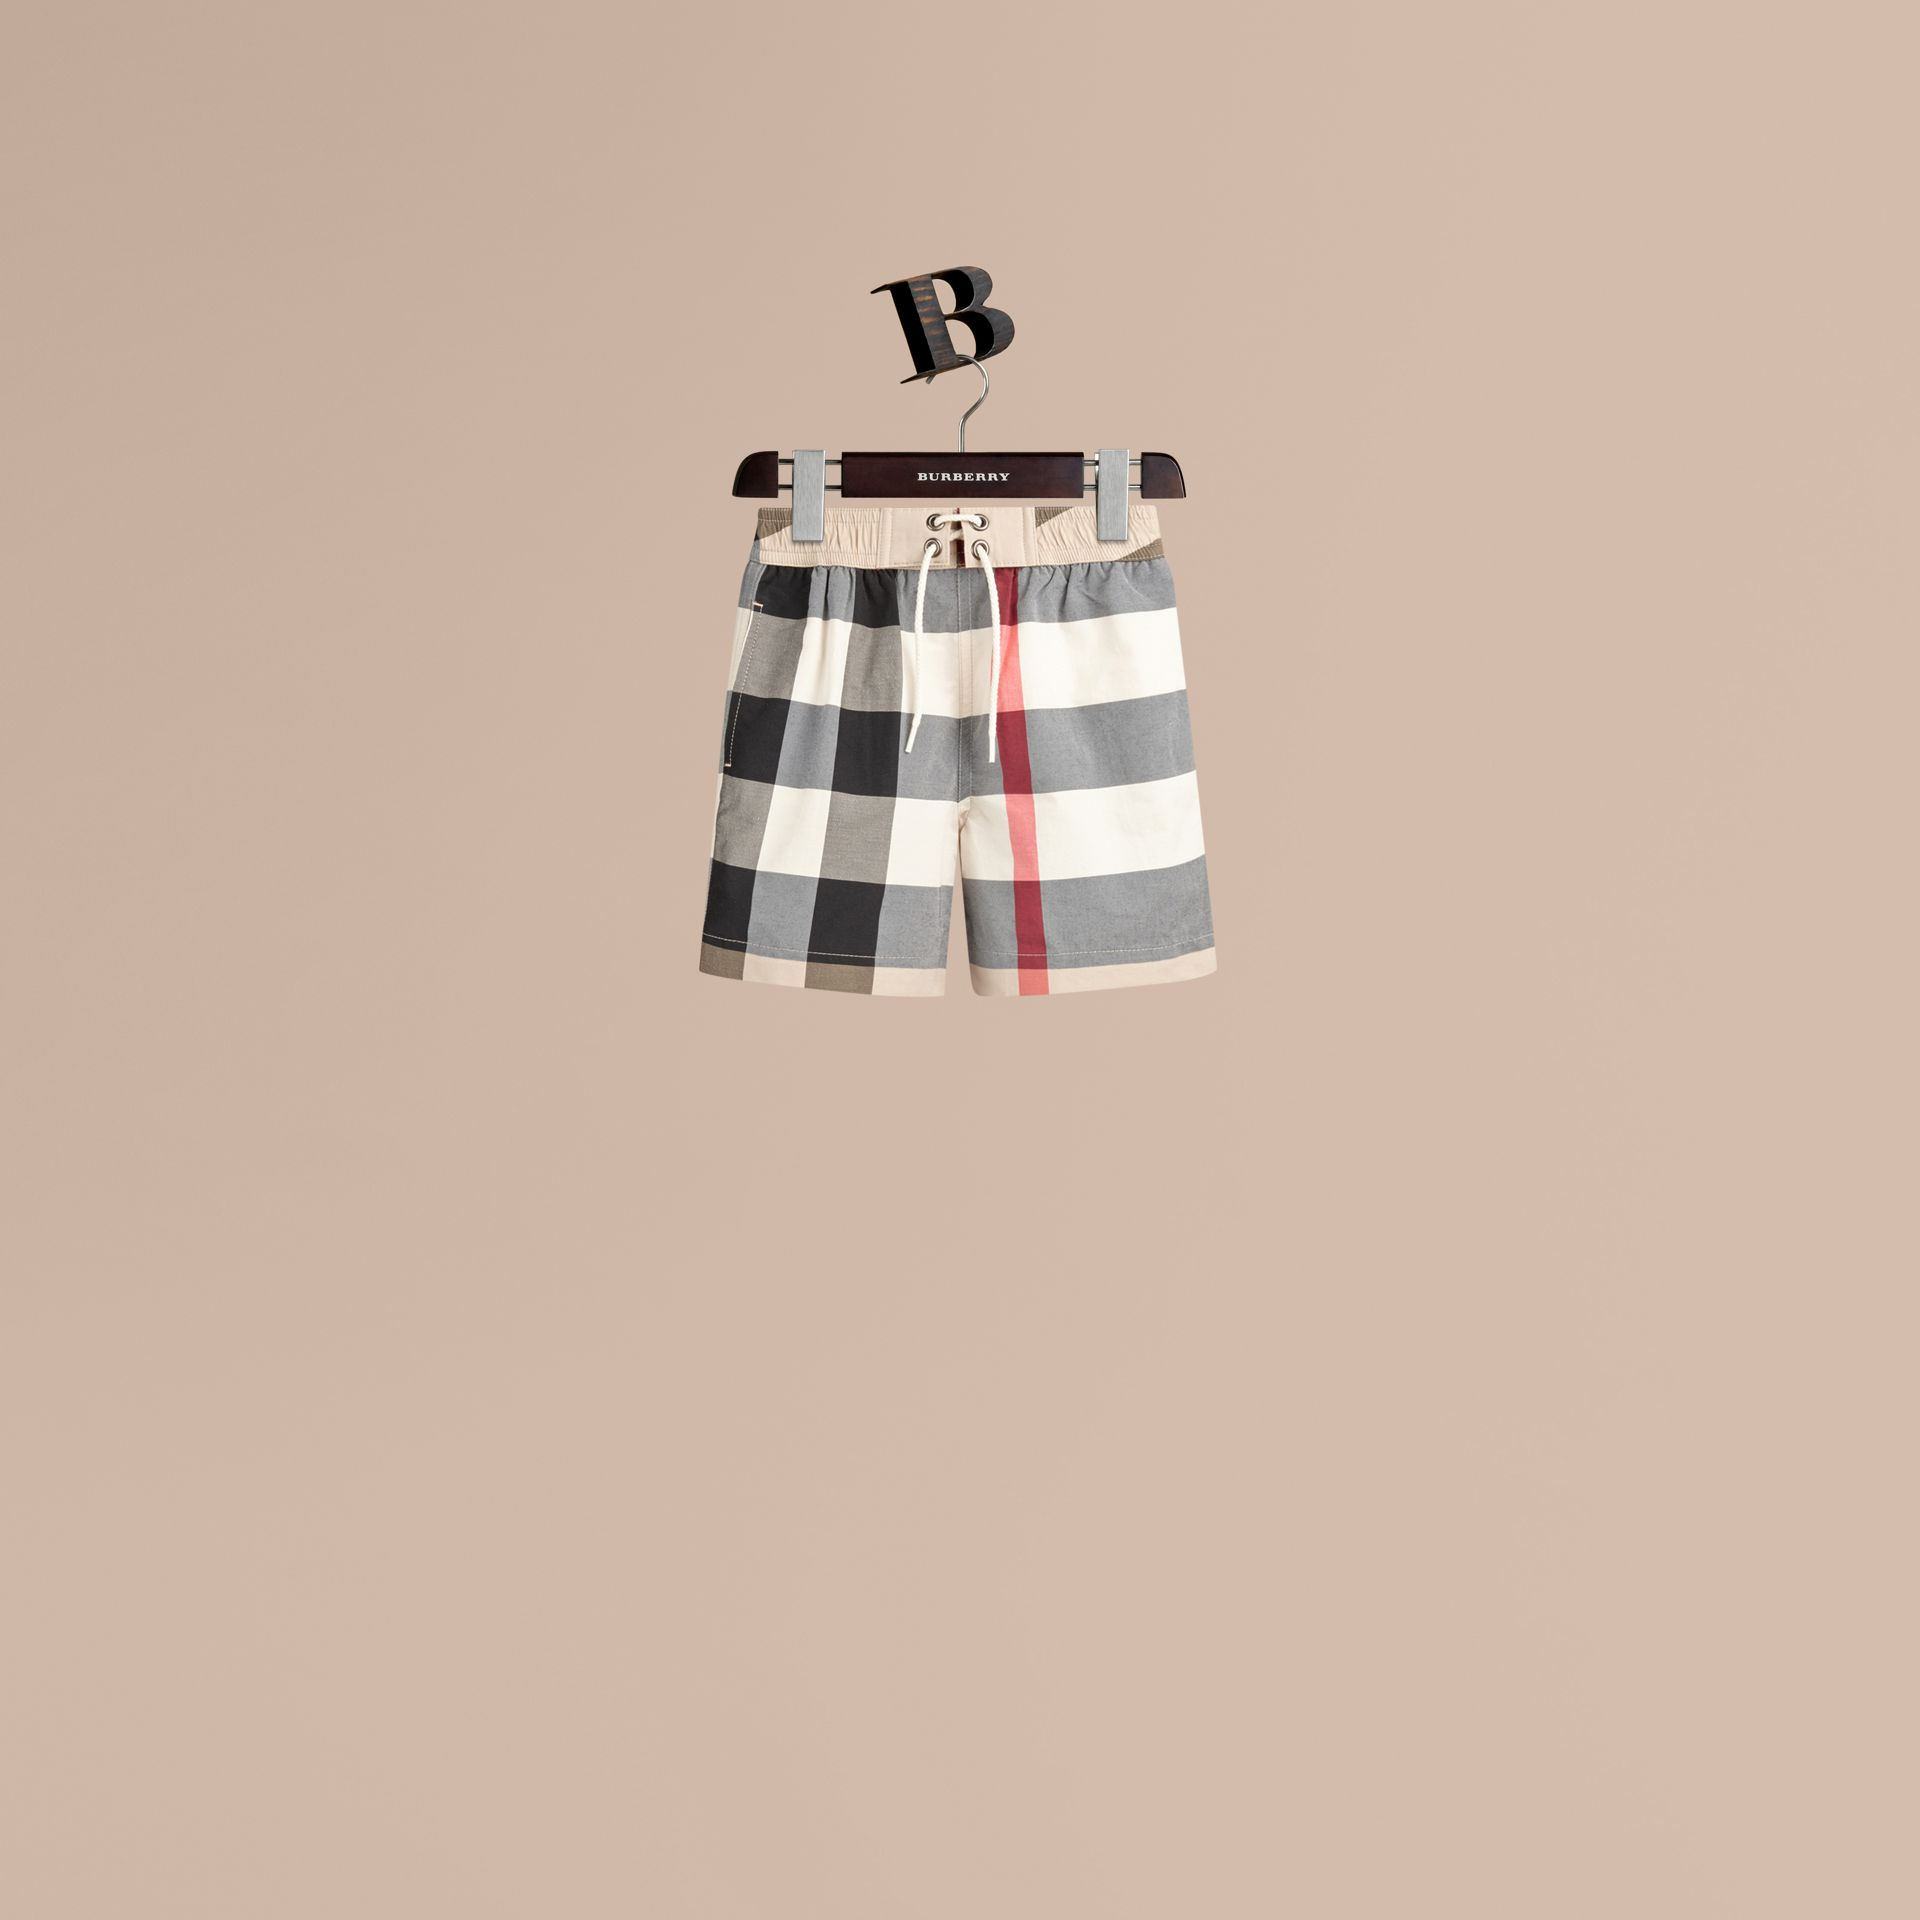 Nouveau check classique Short de bain à motif check - photo de la galerie 1